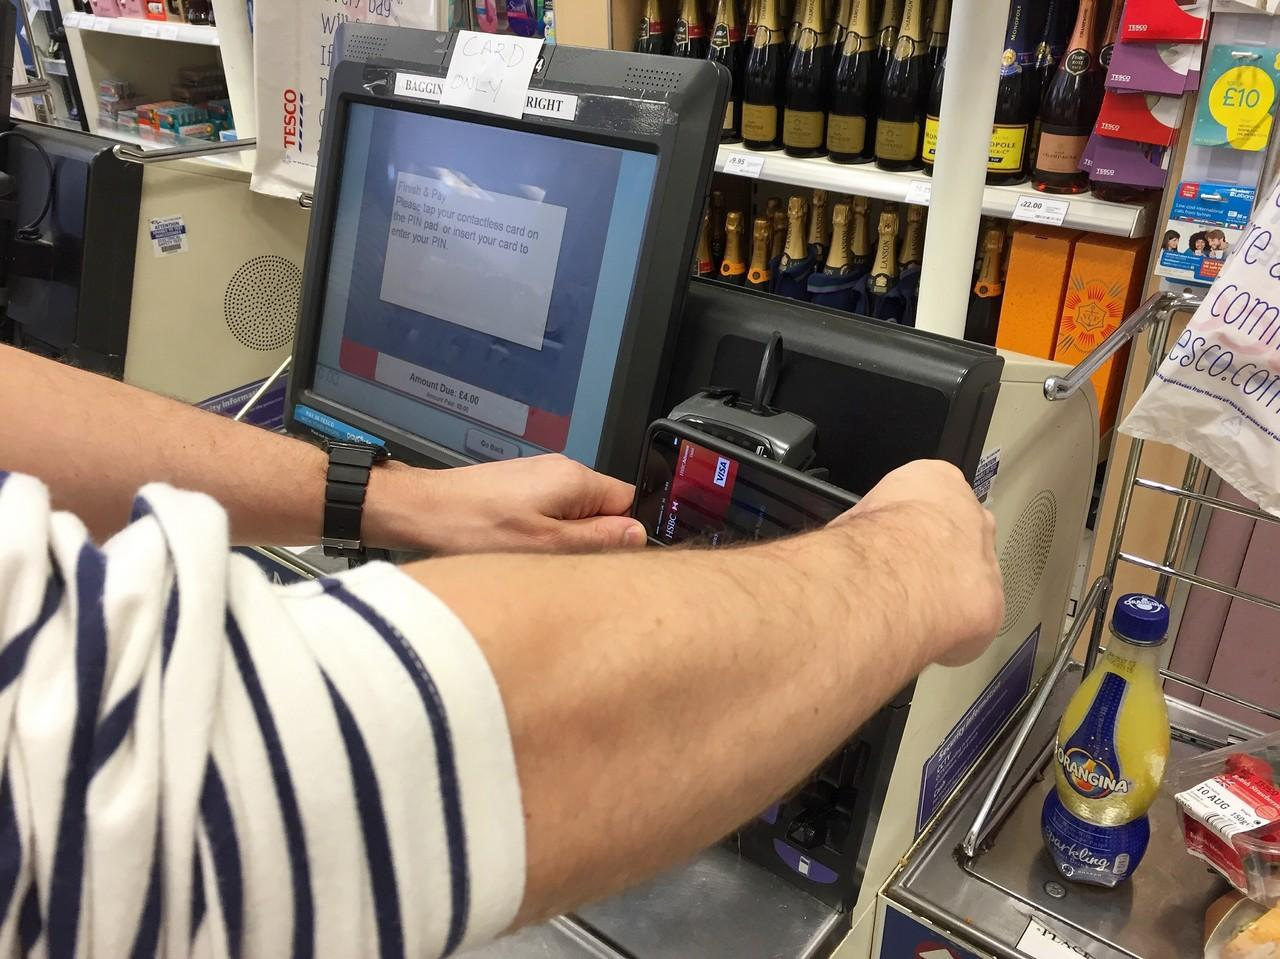 How to Prevent Retail Employee Theft